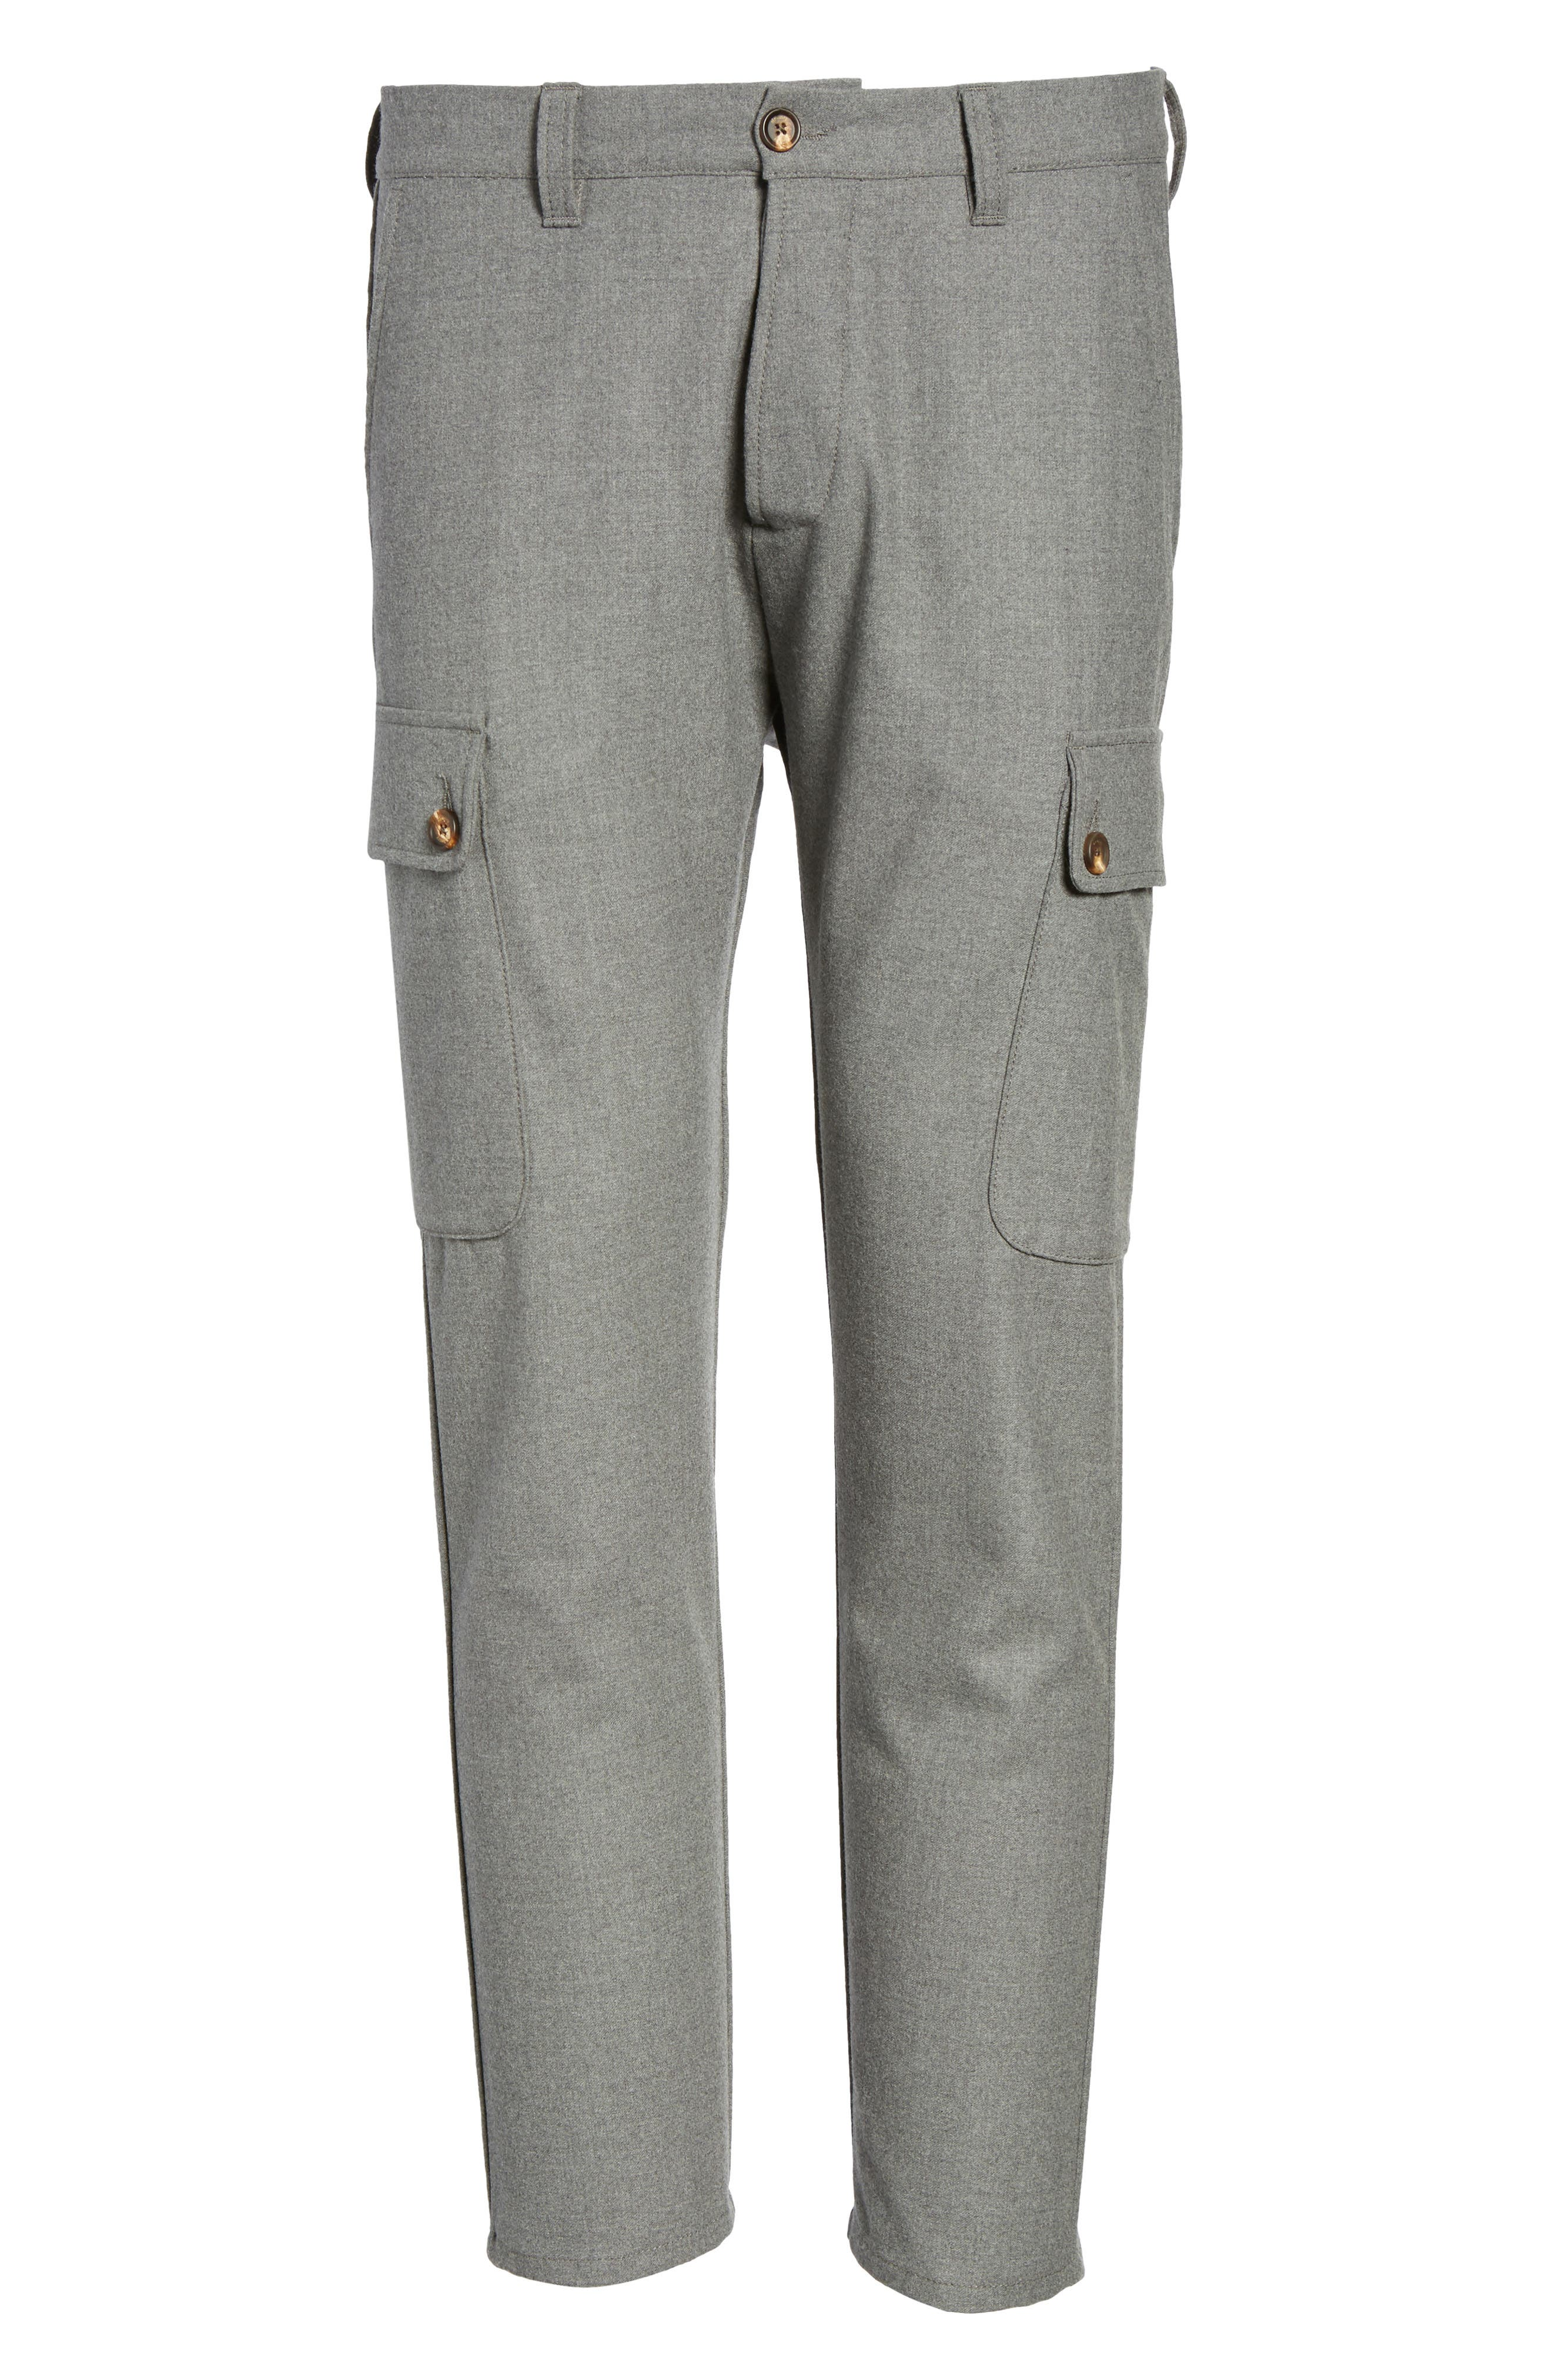 Stretch Wool Cargo Pants,                             Alternate thumbnail 6, color,                             034